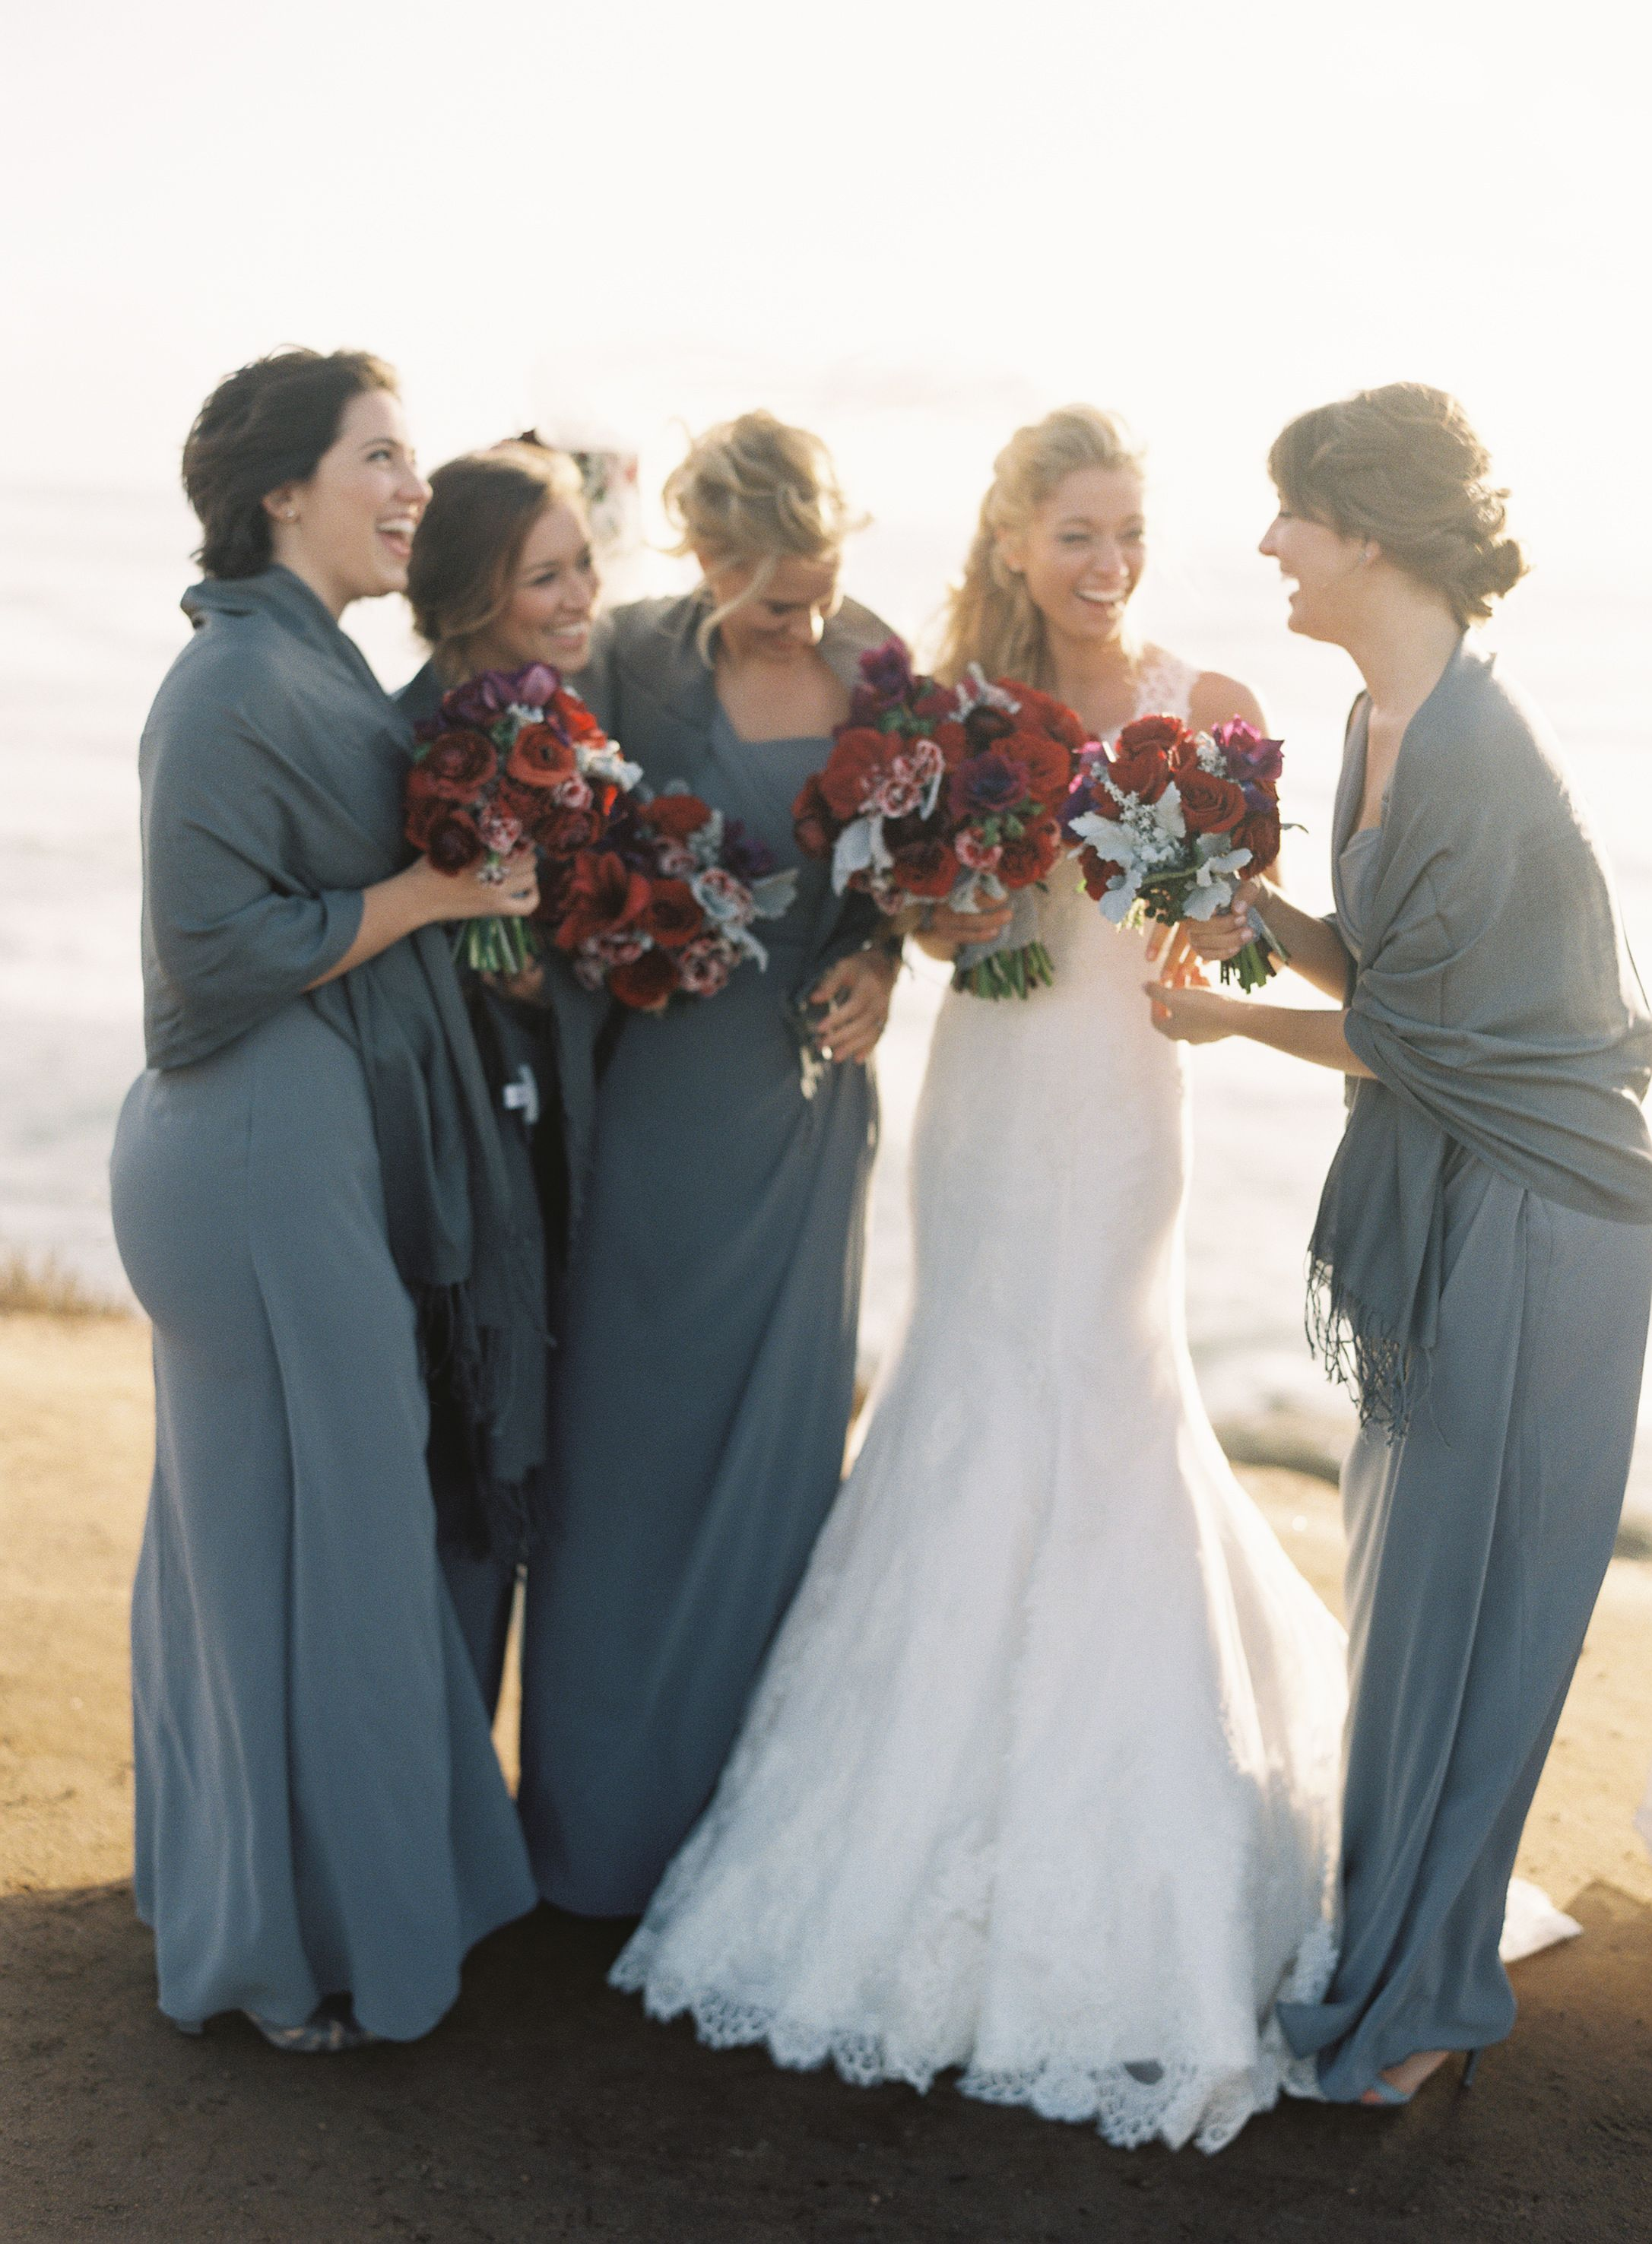 Bride with bridesmaids in long dresses estes wedding ideas bride with bridesmaids in long dresses ombrellifo Images